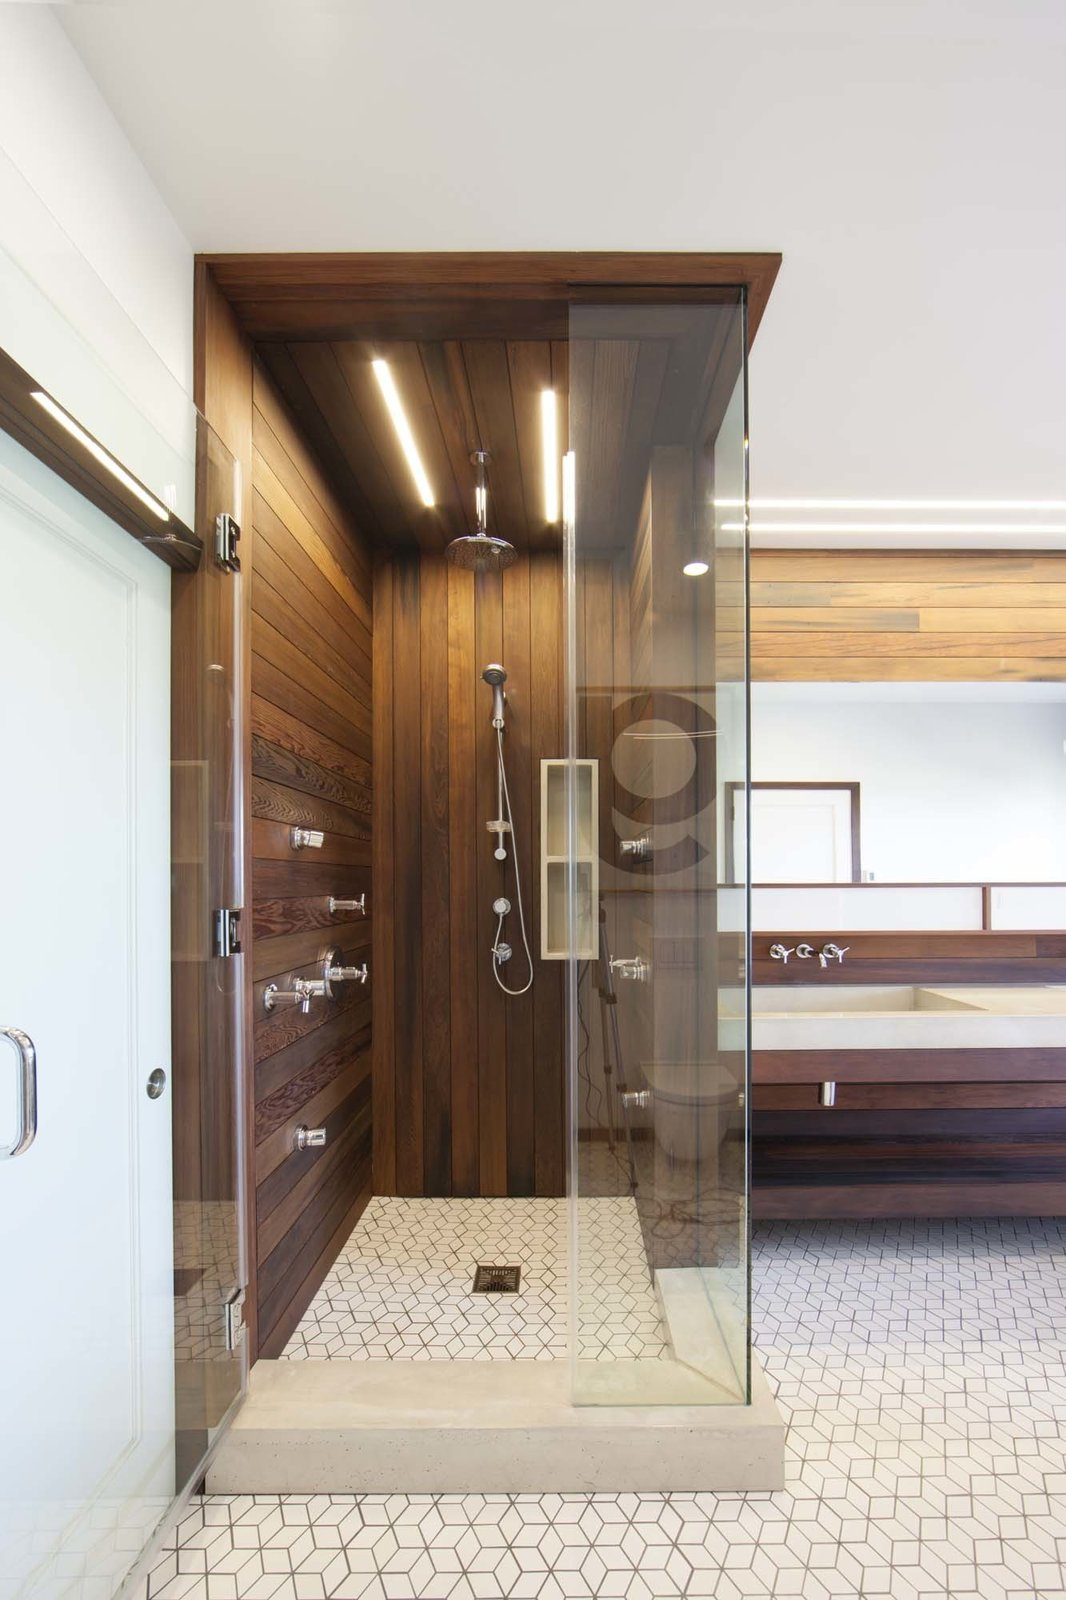 Bath Room and Enclosed Shower Lighting in the bathroom is provided by San Francisco-based Aion LED's modular fixture system. The linear lighting mimics the redwood siding.  Photo 10 of 10 in 10 Best Modern Showers to Inspire Your Bathroom Renovation from Warm Wood Modern Bathroom Renovation in San Francisco